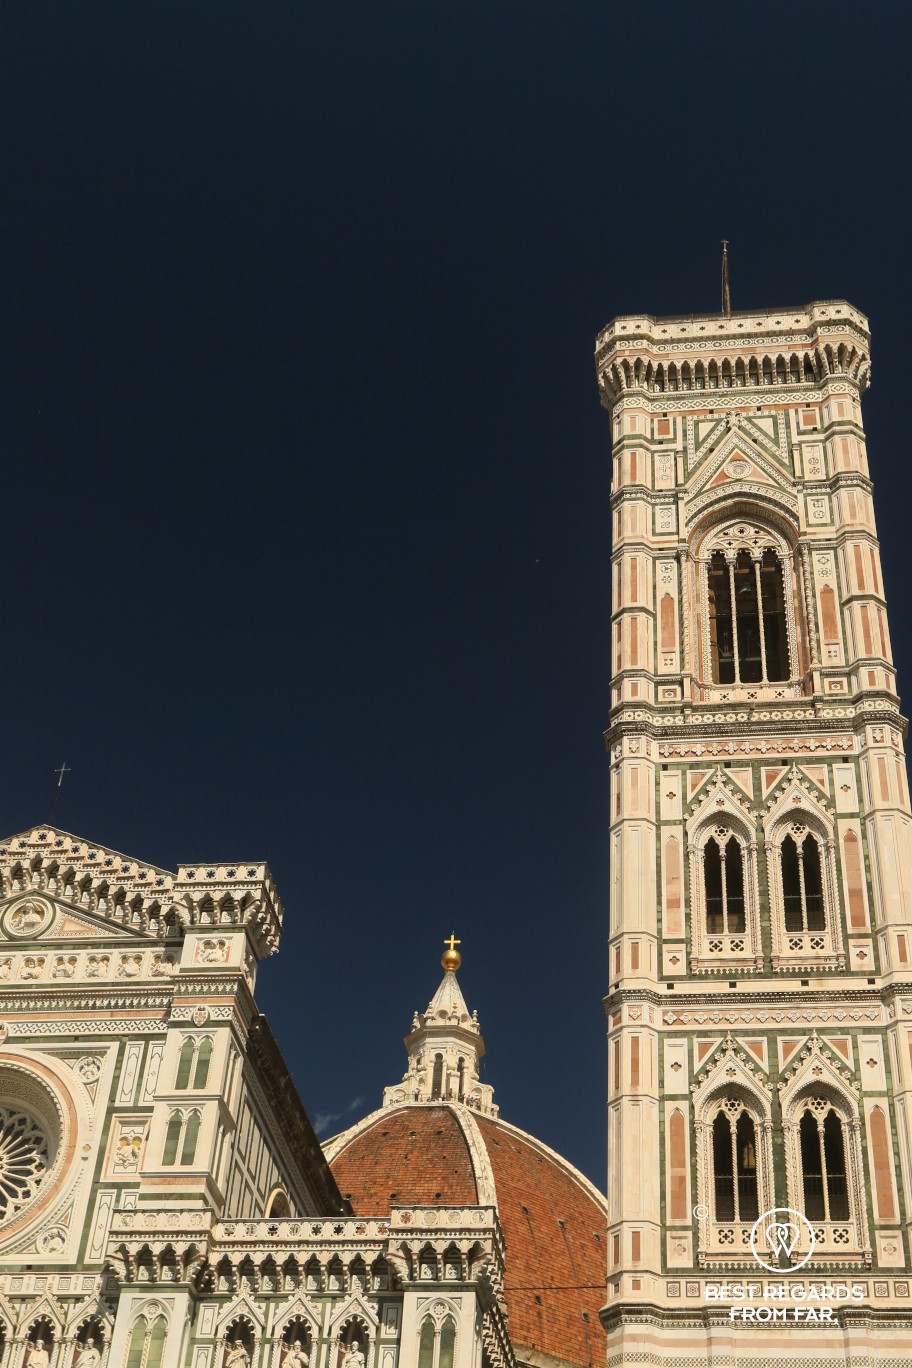 The Duomo and Bell Tower, Florence, Italy